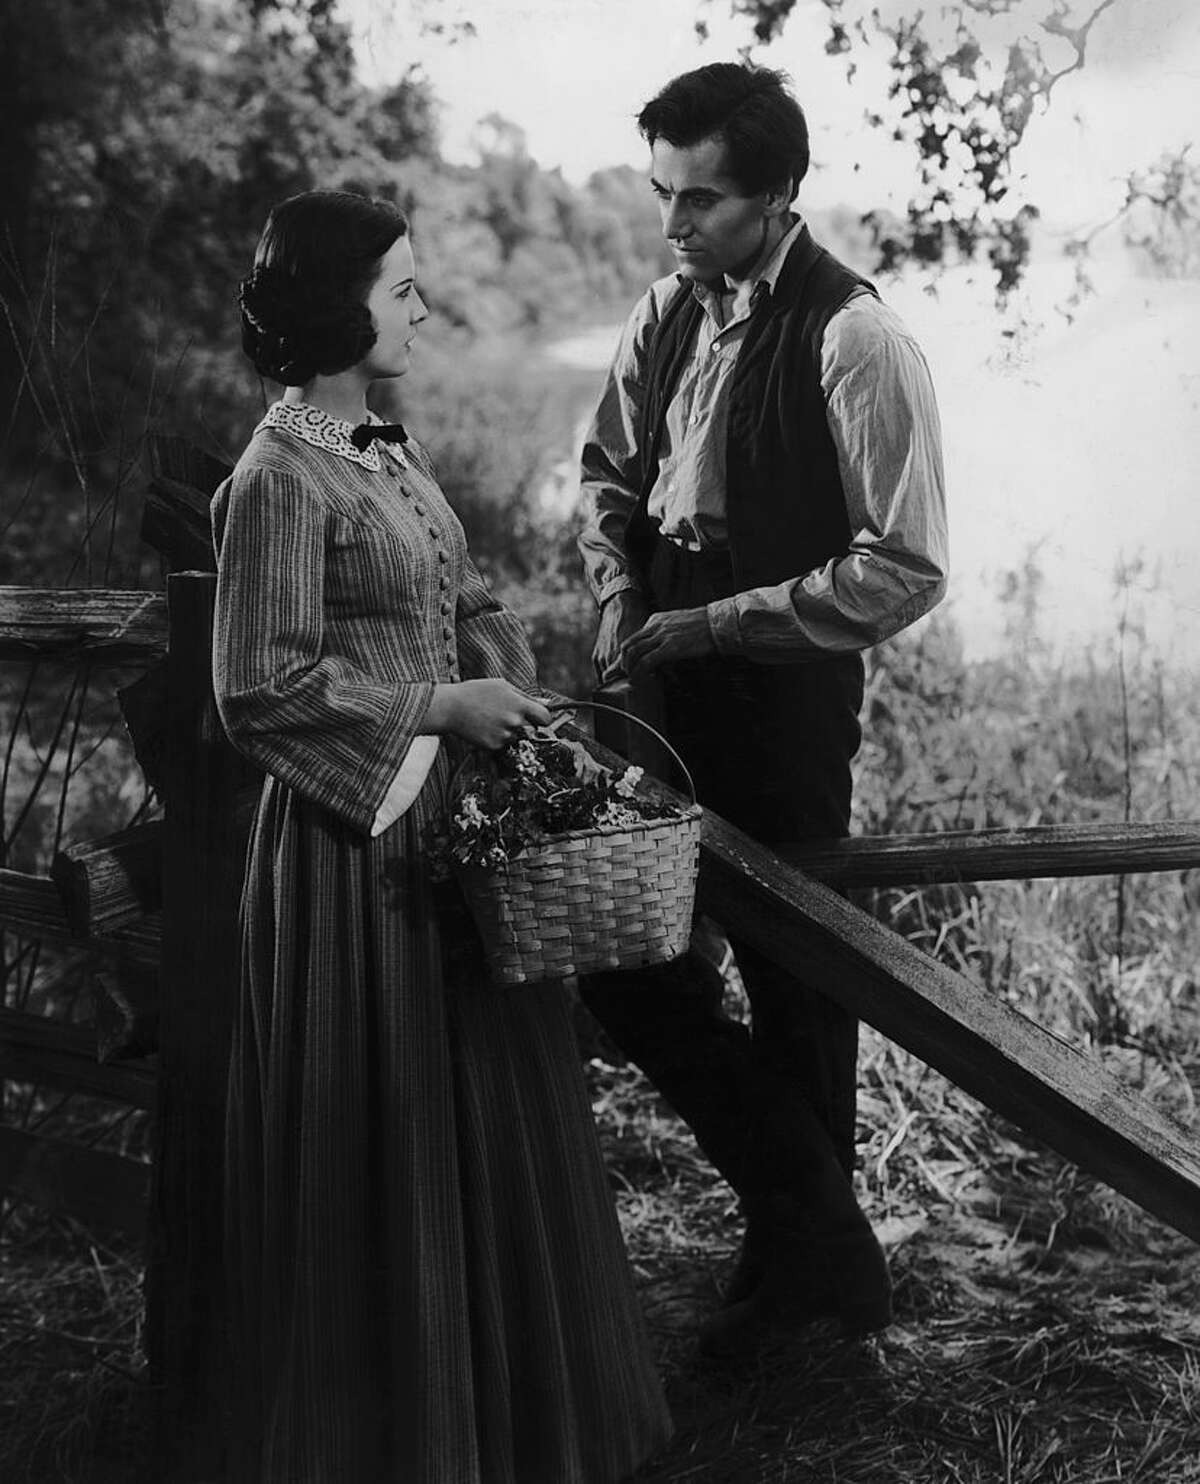 Henry Fonda plays Abraham Lincoln in the film